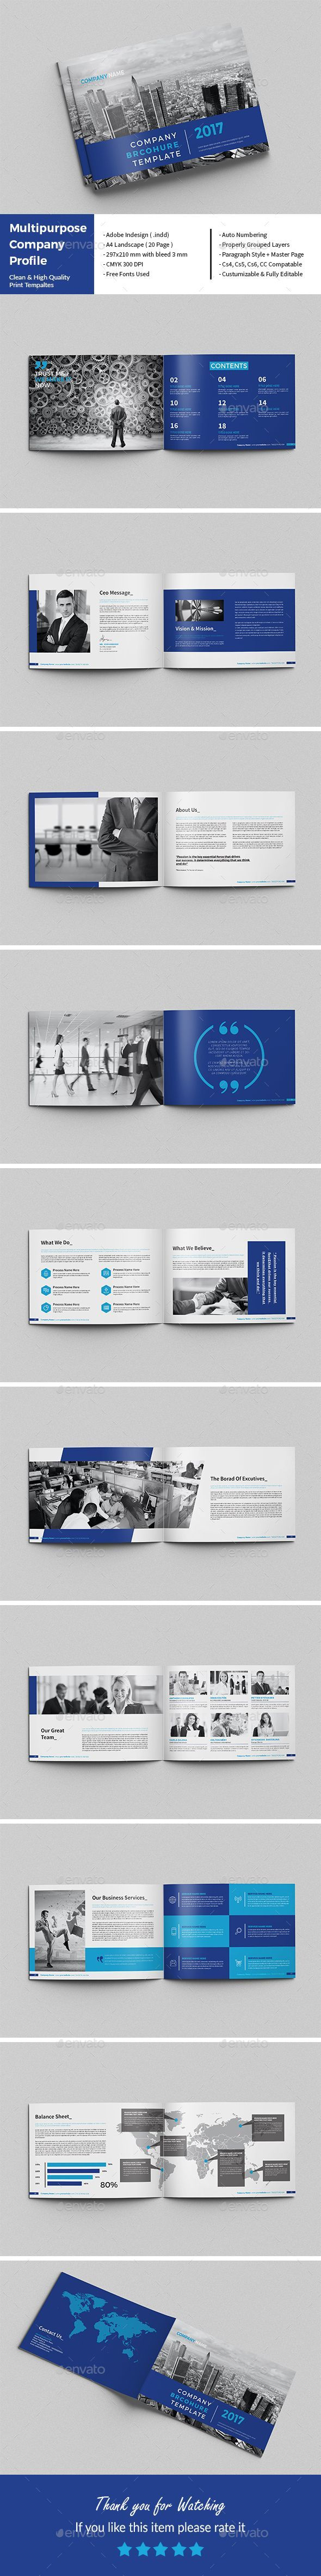 Multipurpose Company Profile Indesign Template Only Available